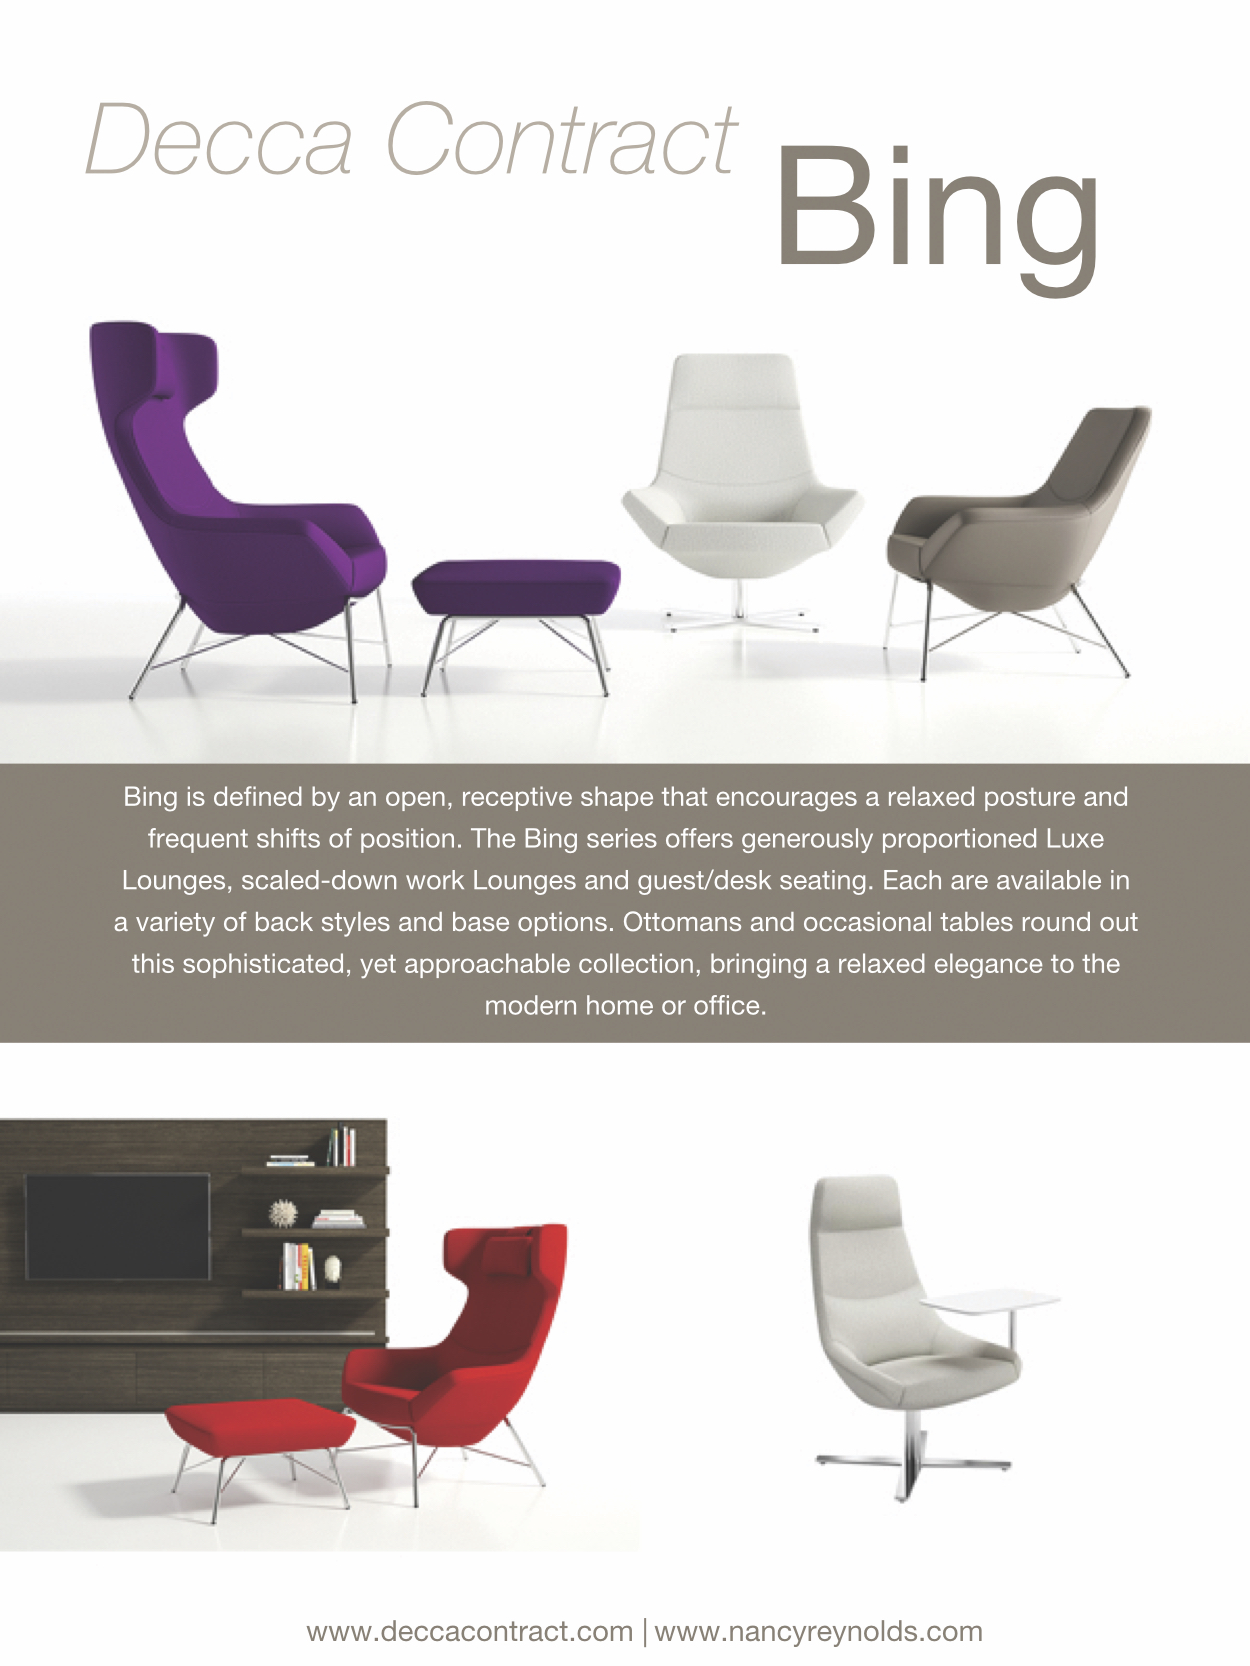 Bing by Decca Contract.jpg